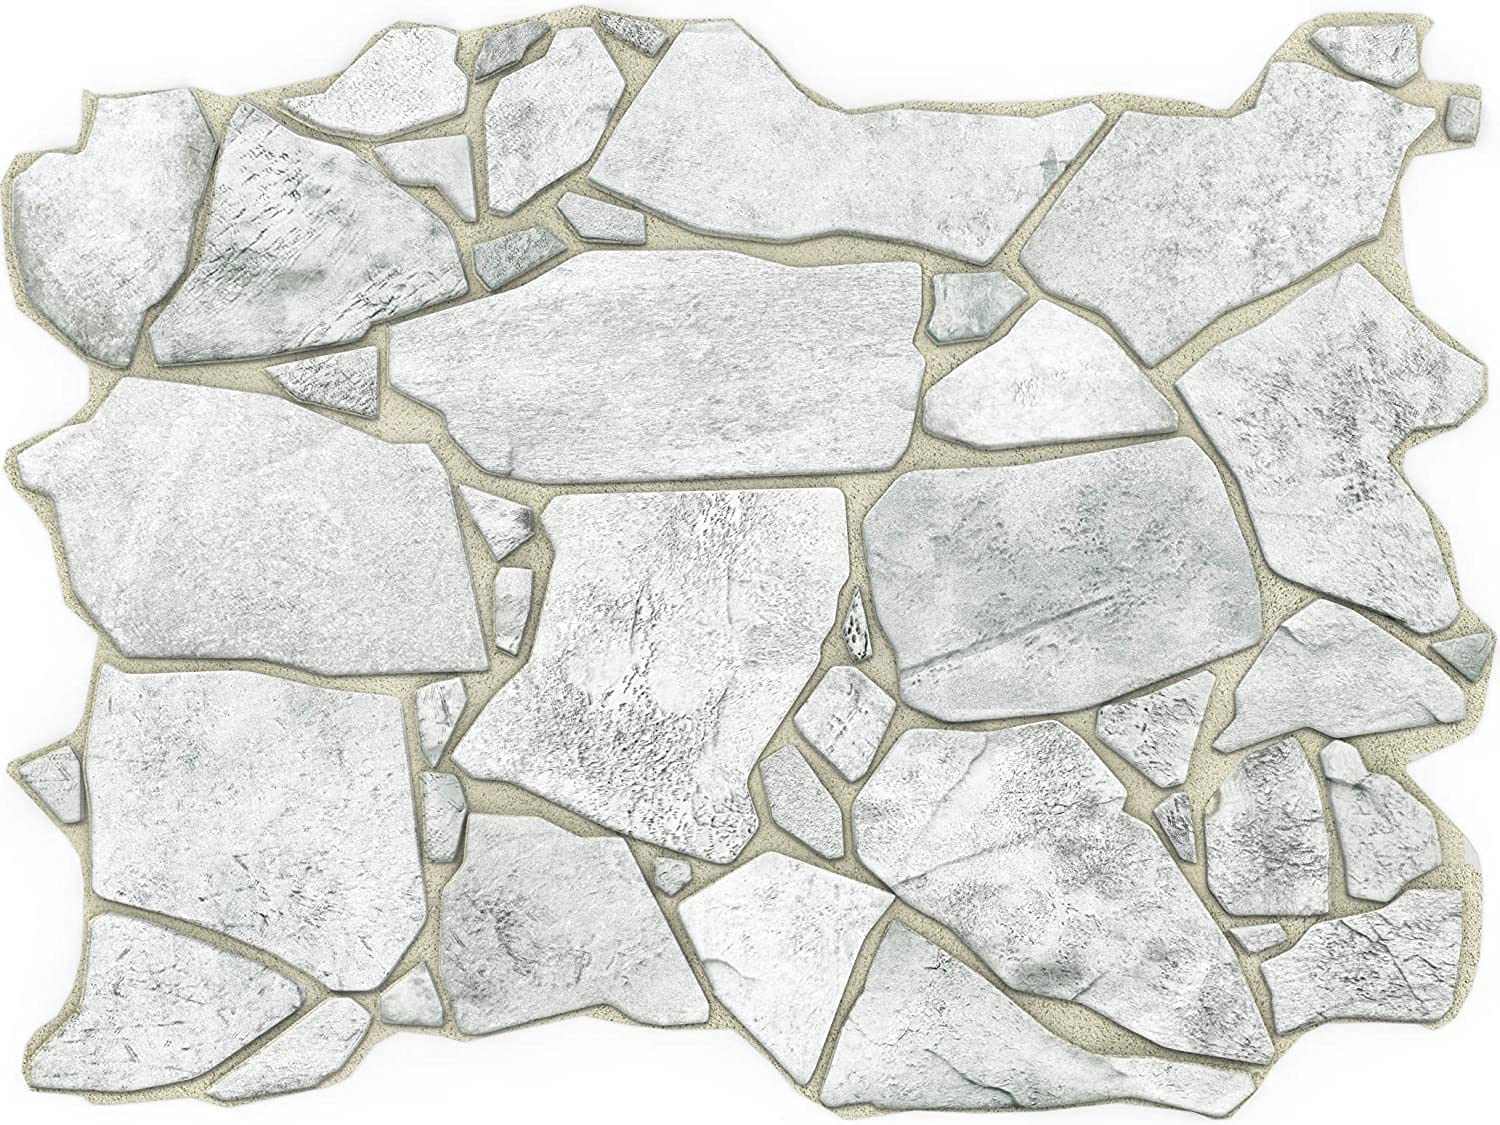 Concord Wallcoverings 3D Wall Panel Grey Crude Stone Designed Pattern, Raised Texture, Waterproof and Fire-Resistant PVC, Size 23.5 Inches Wide 17.5 Inches High 562WG (10)